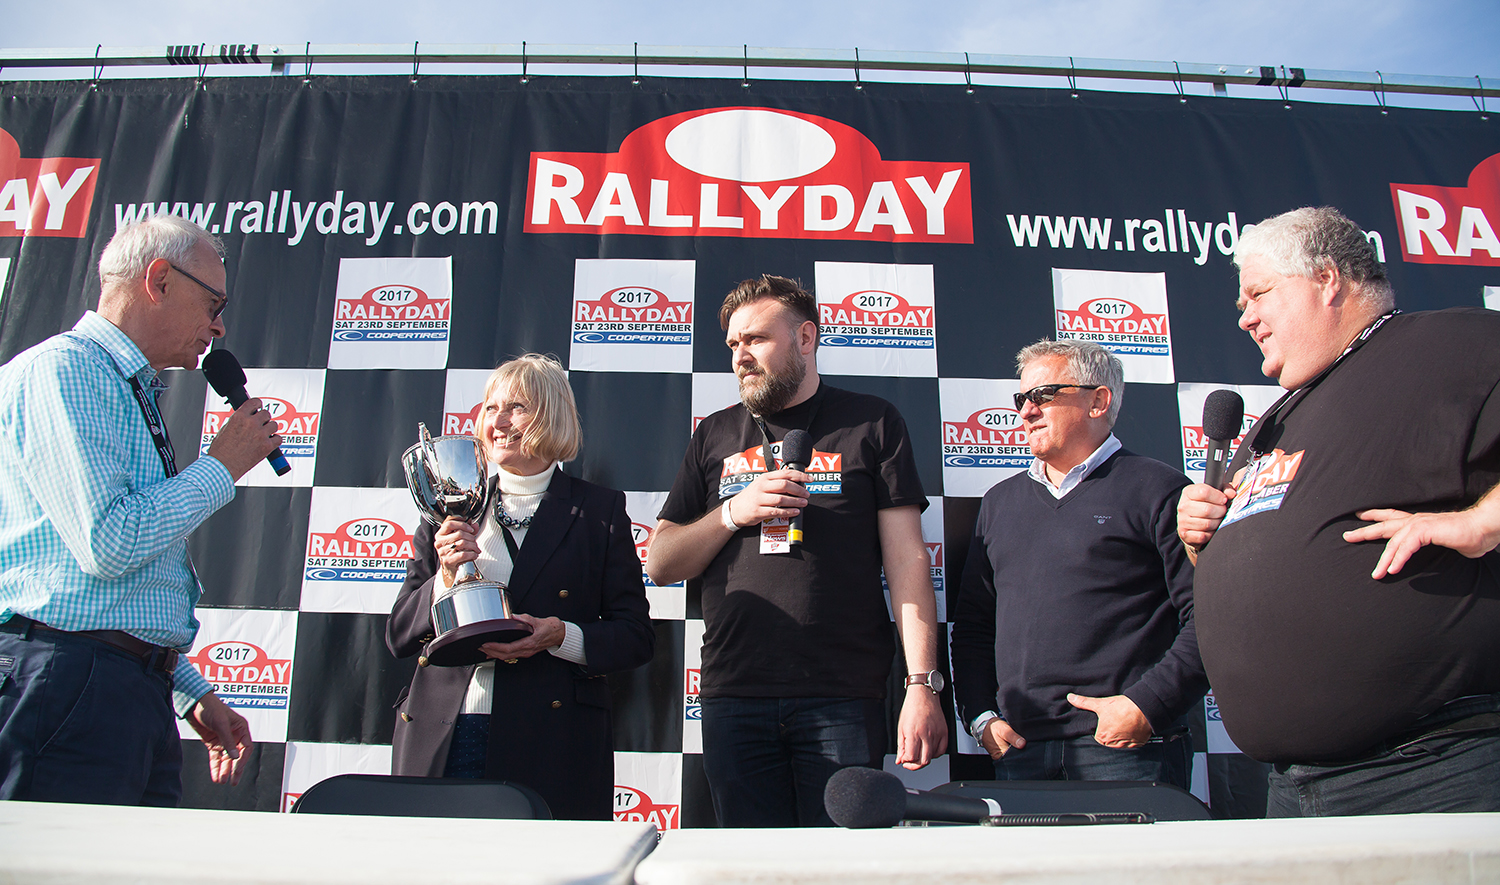 Q&A WITH RALLYDAY ORGANISER, TOM DAVIS